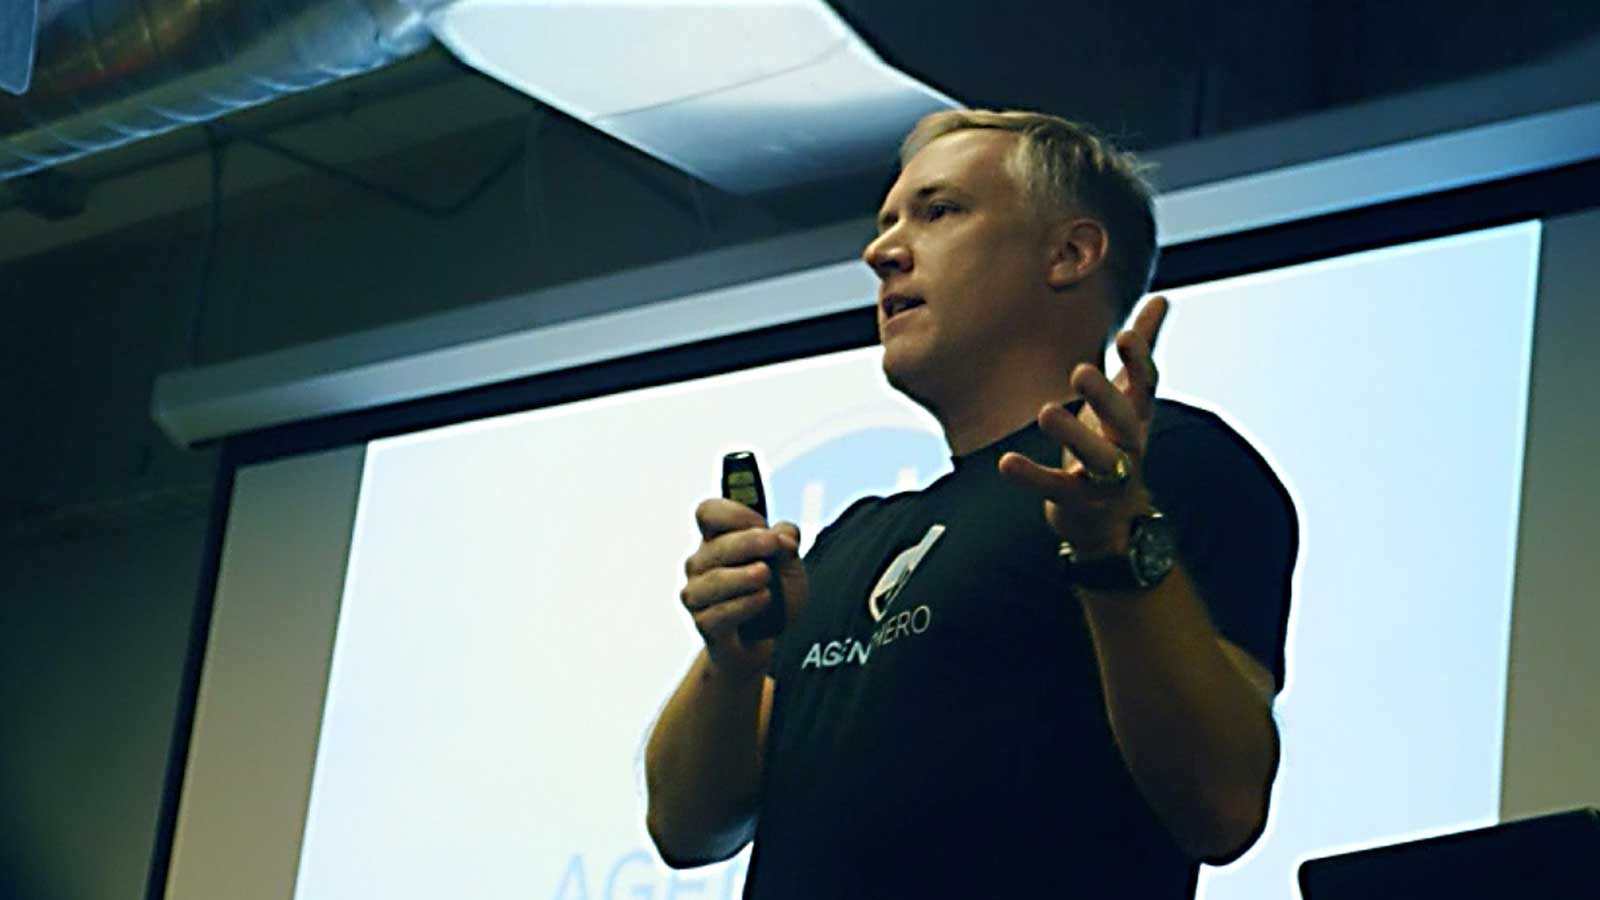 Bunker Labs member giving speech